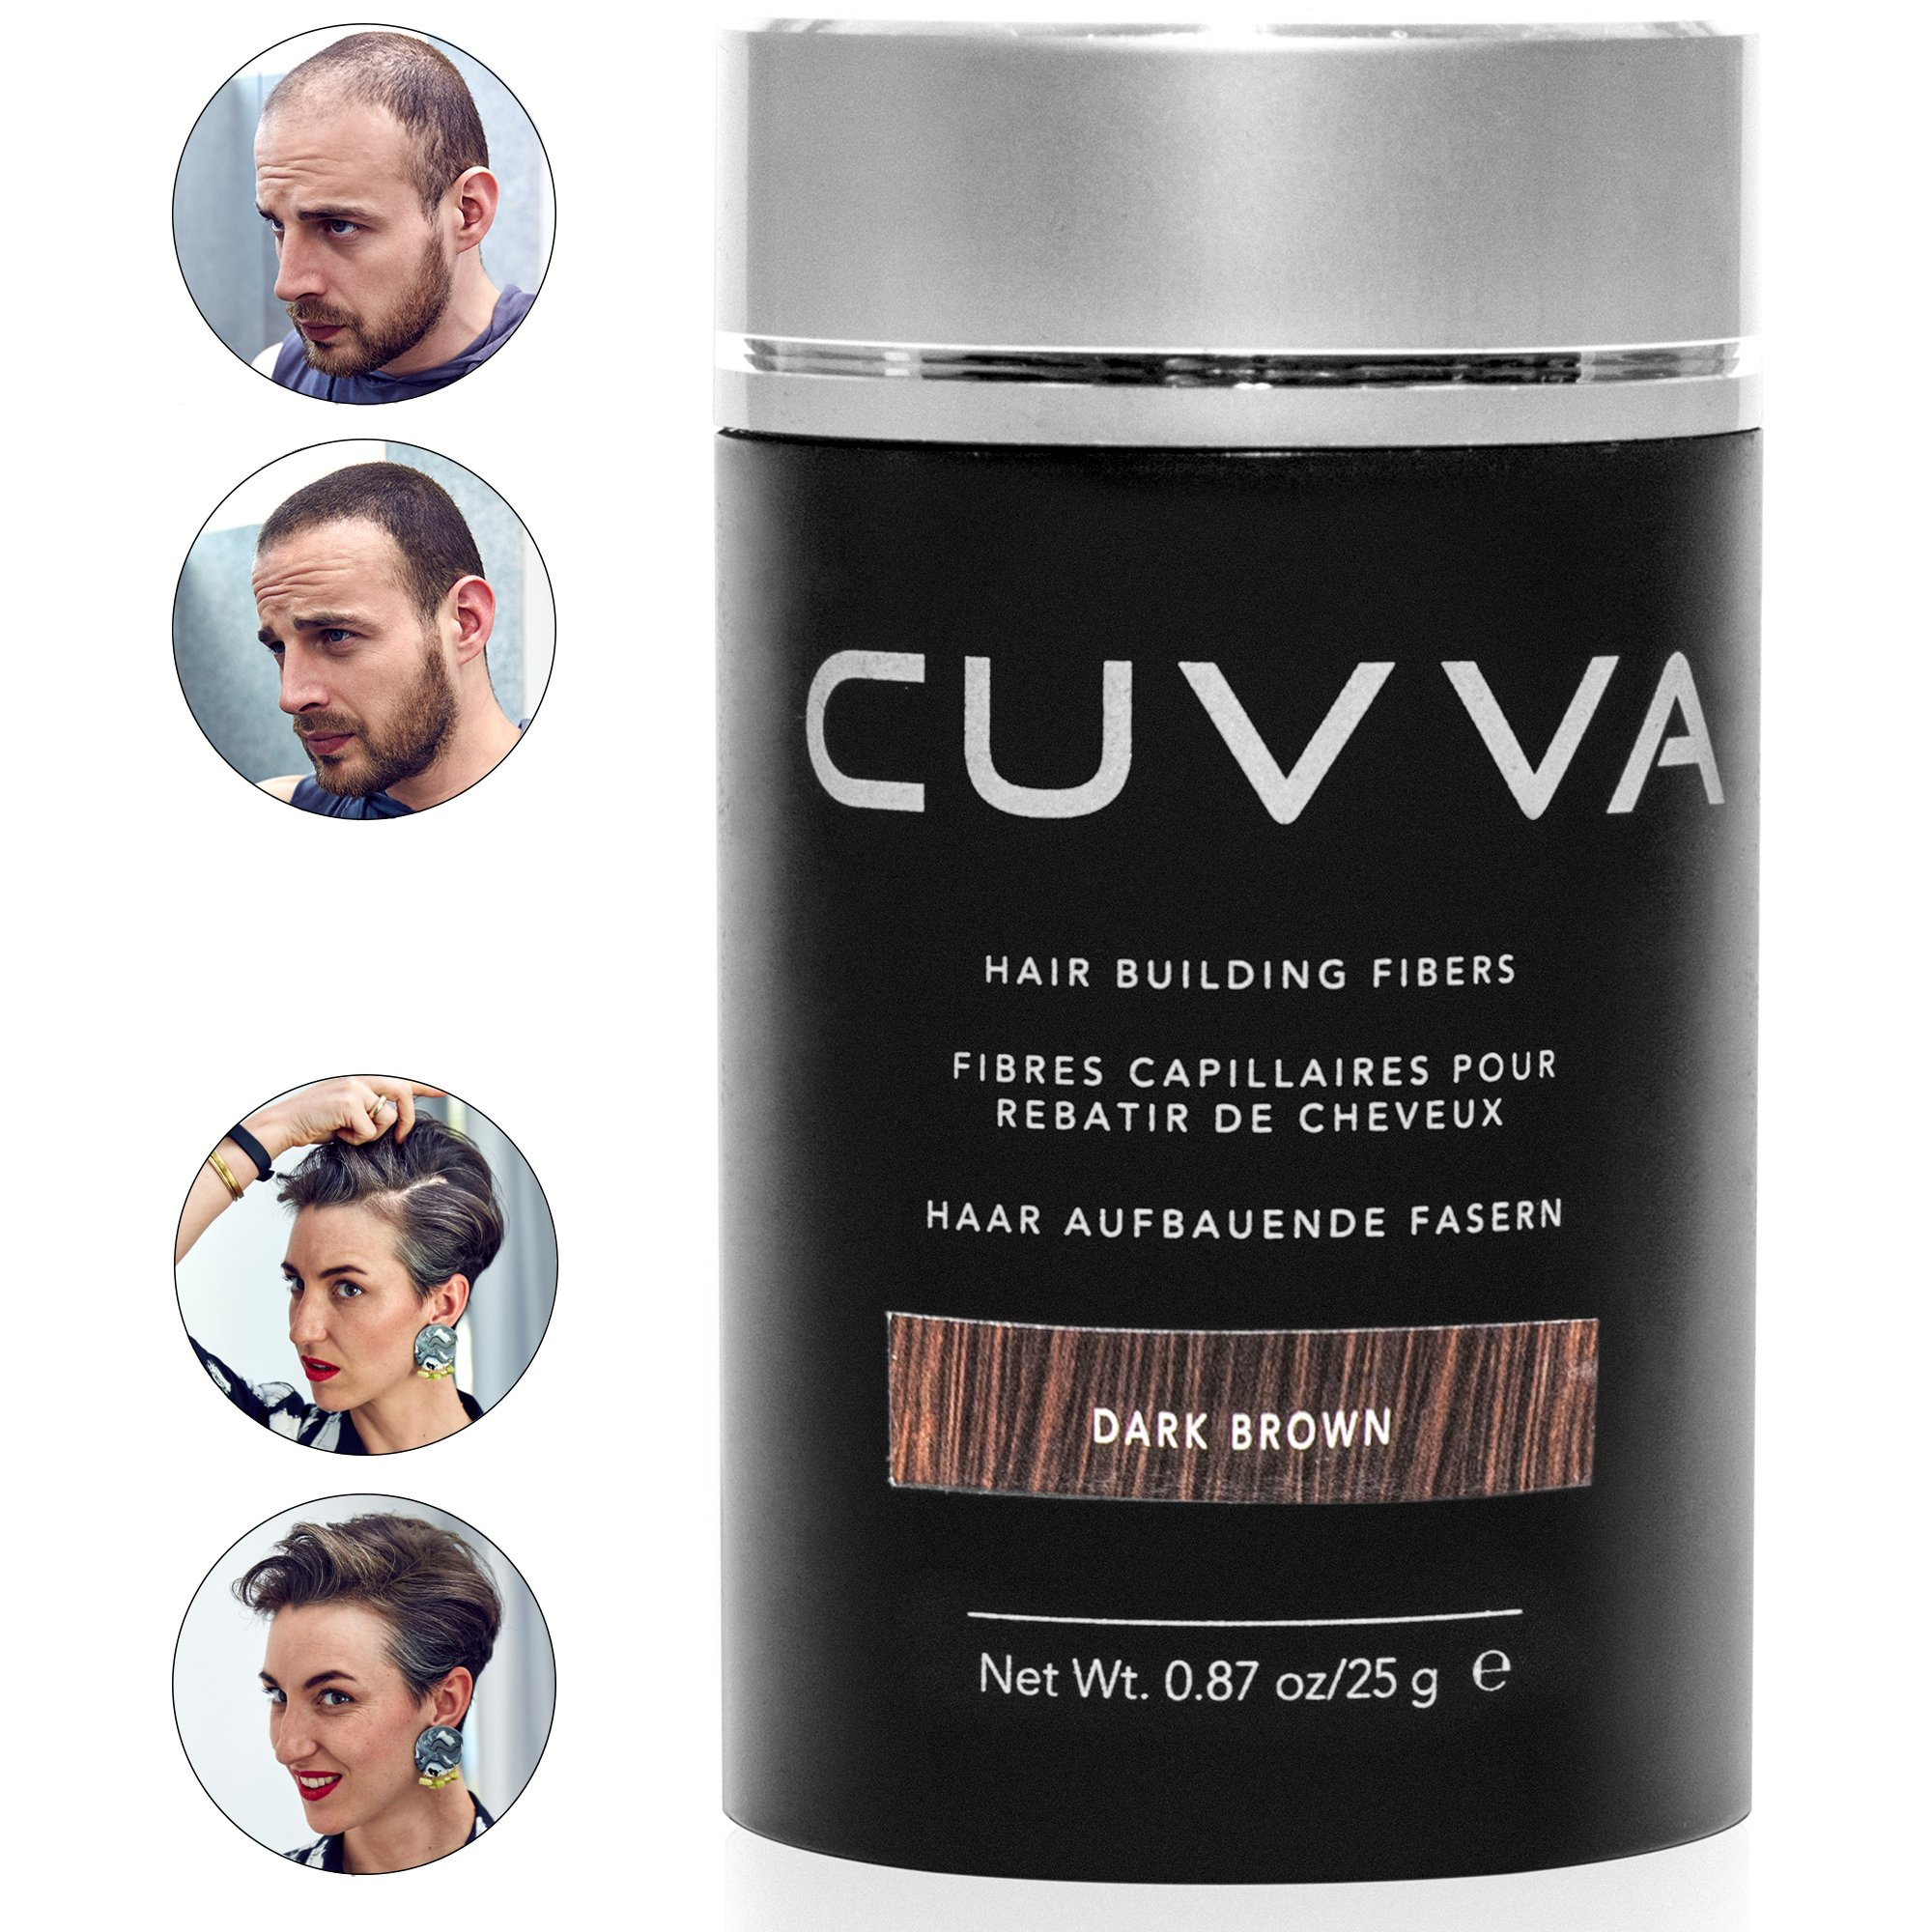 CUVVA Hair Fibers - Hair Loss Concealer for Thinning Hair - Keratin Hair Building Fiber for Men & Women - Regaine Confidence - 0.87oz - Dark Brown by Cuvva